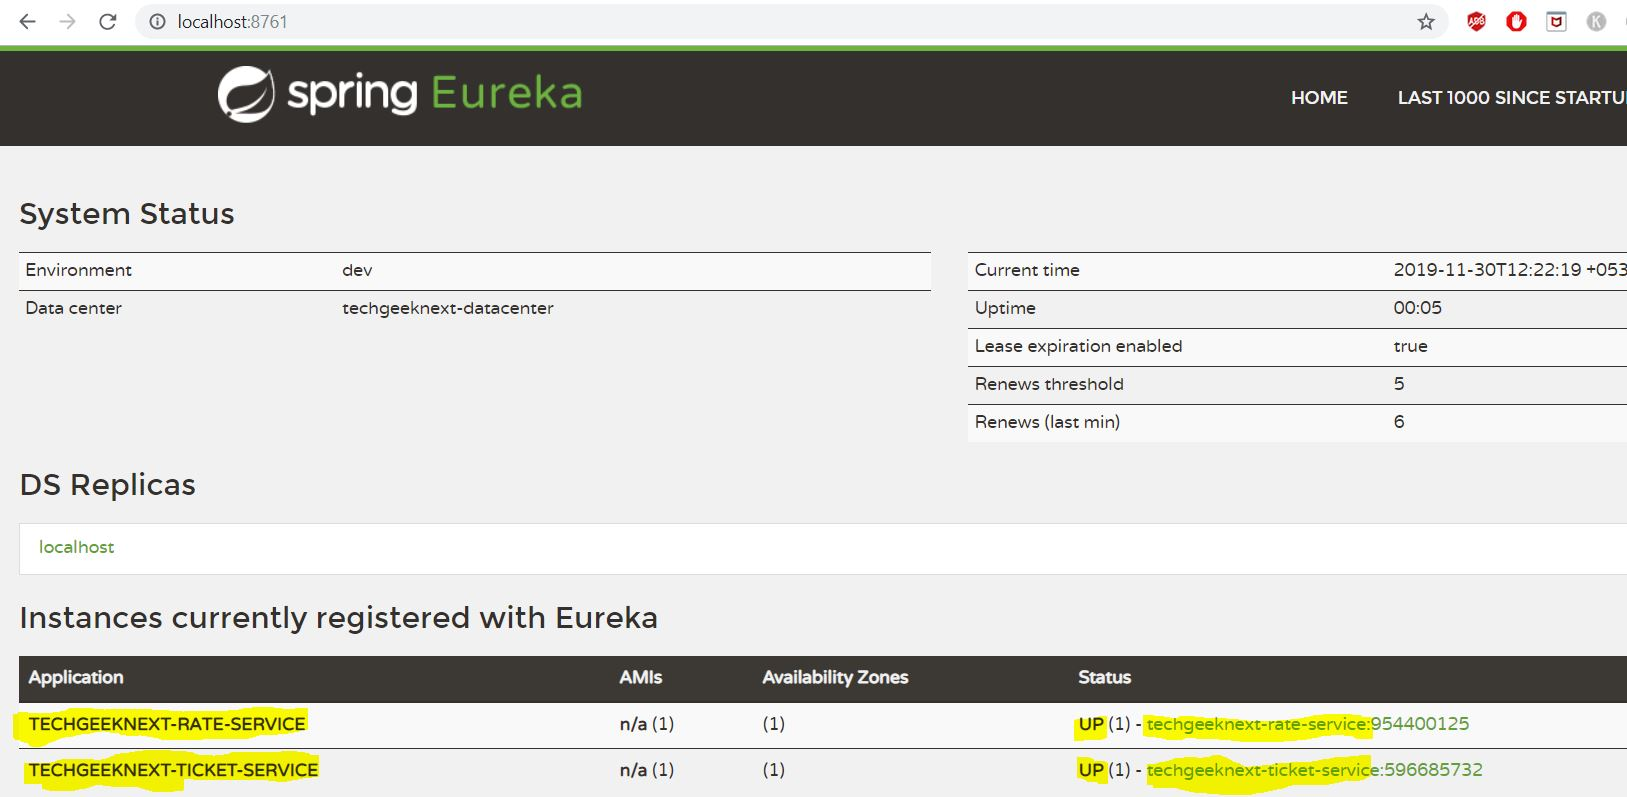 Testing Services in Eureka Server